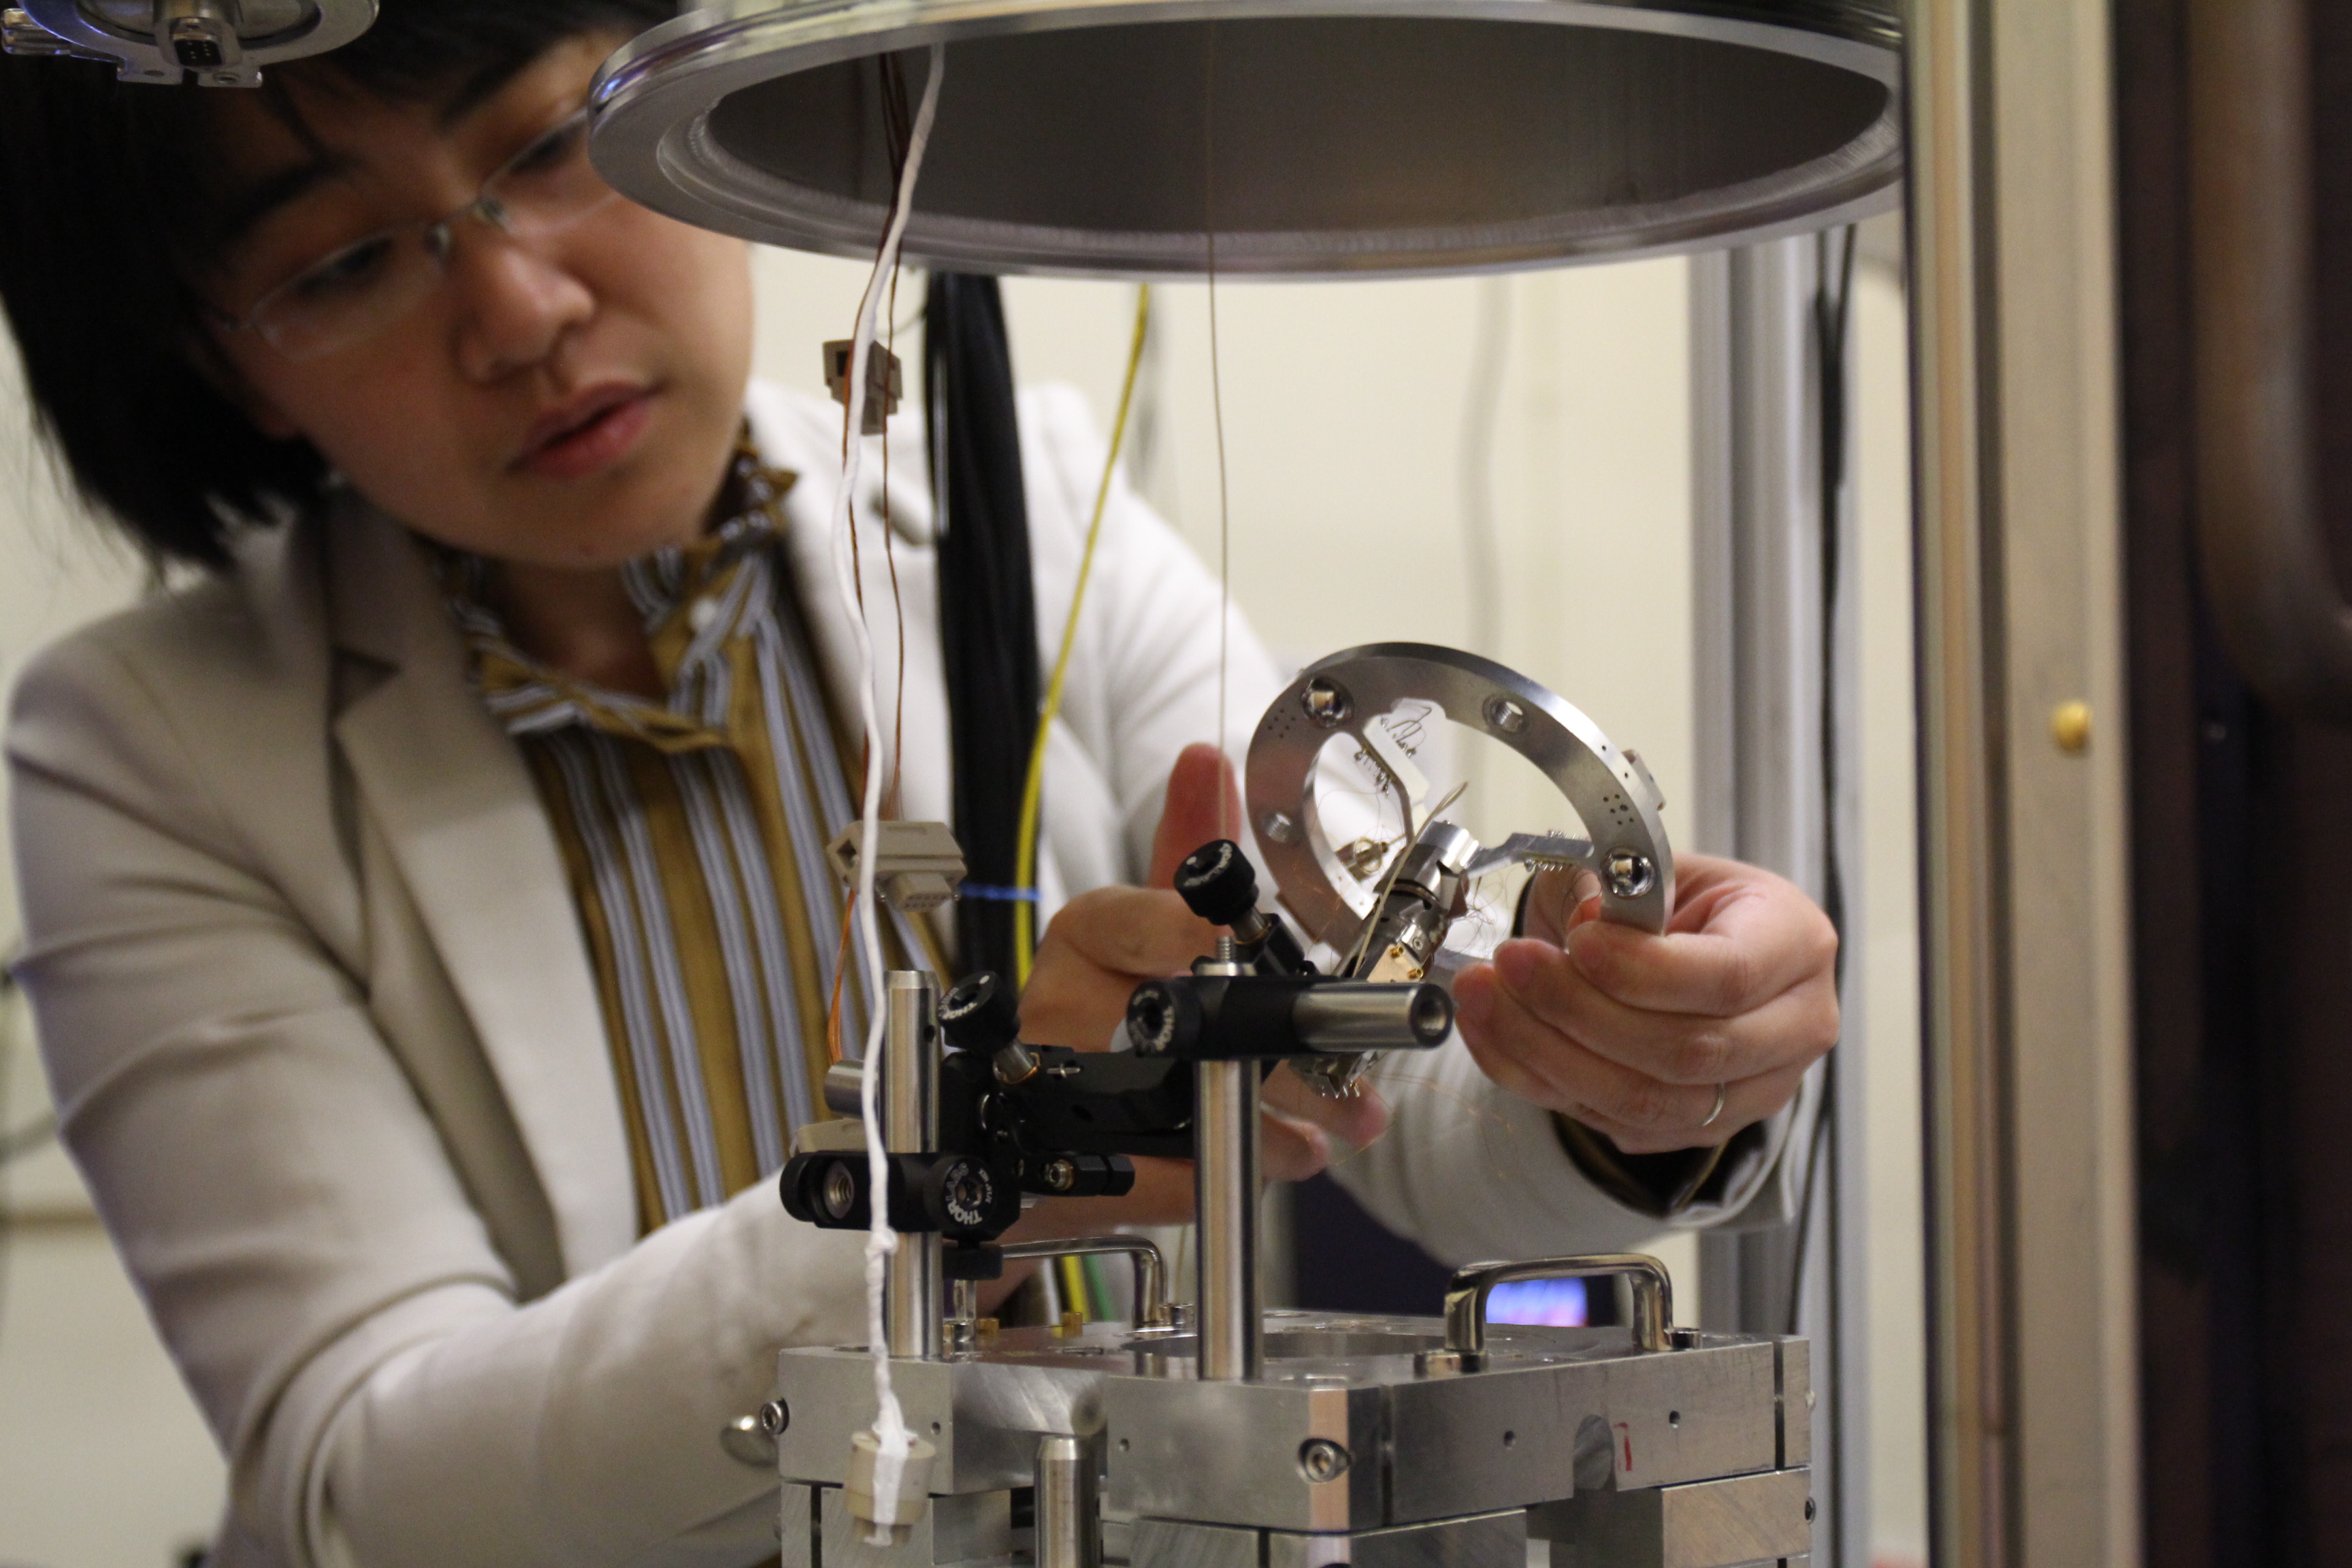 Just one year after arriving at West Virginia University, physicist Lian Li is taking physics research to new frontiers. 